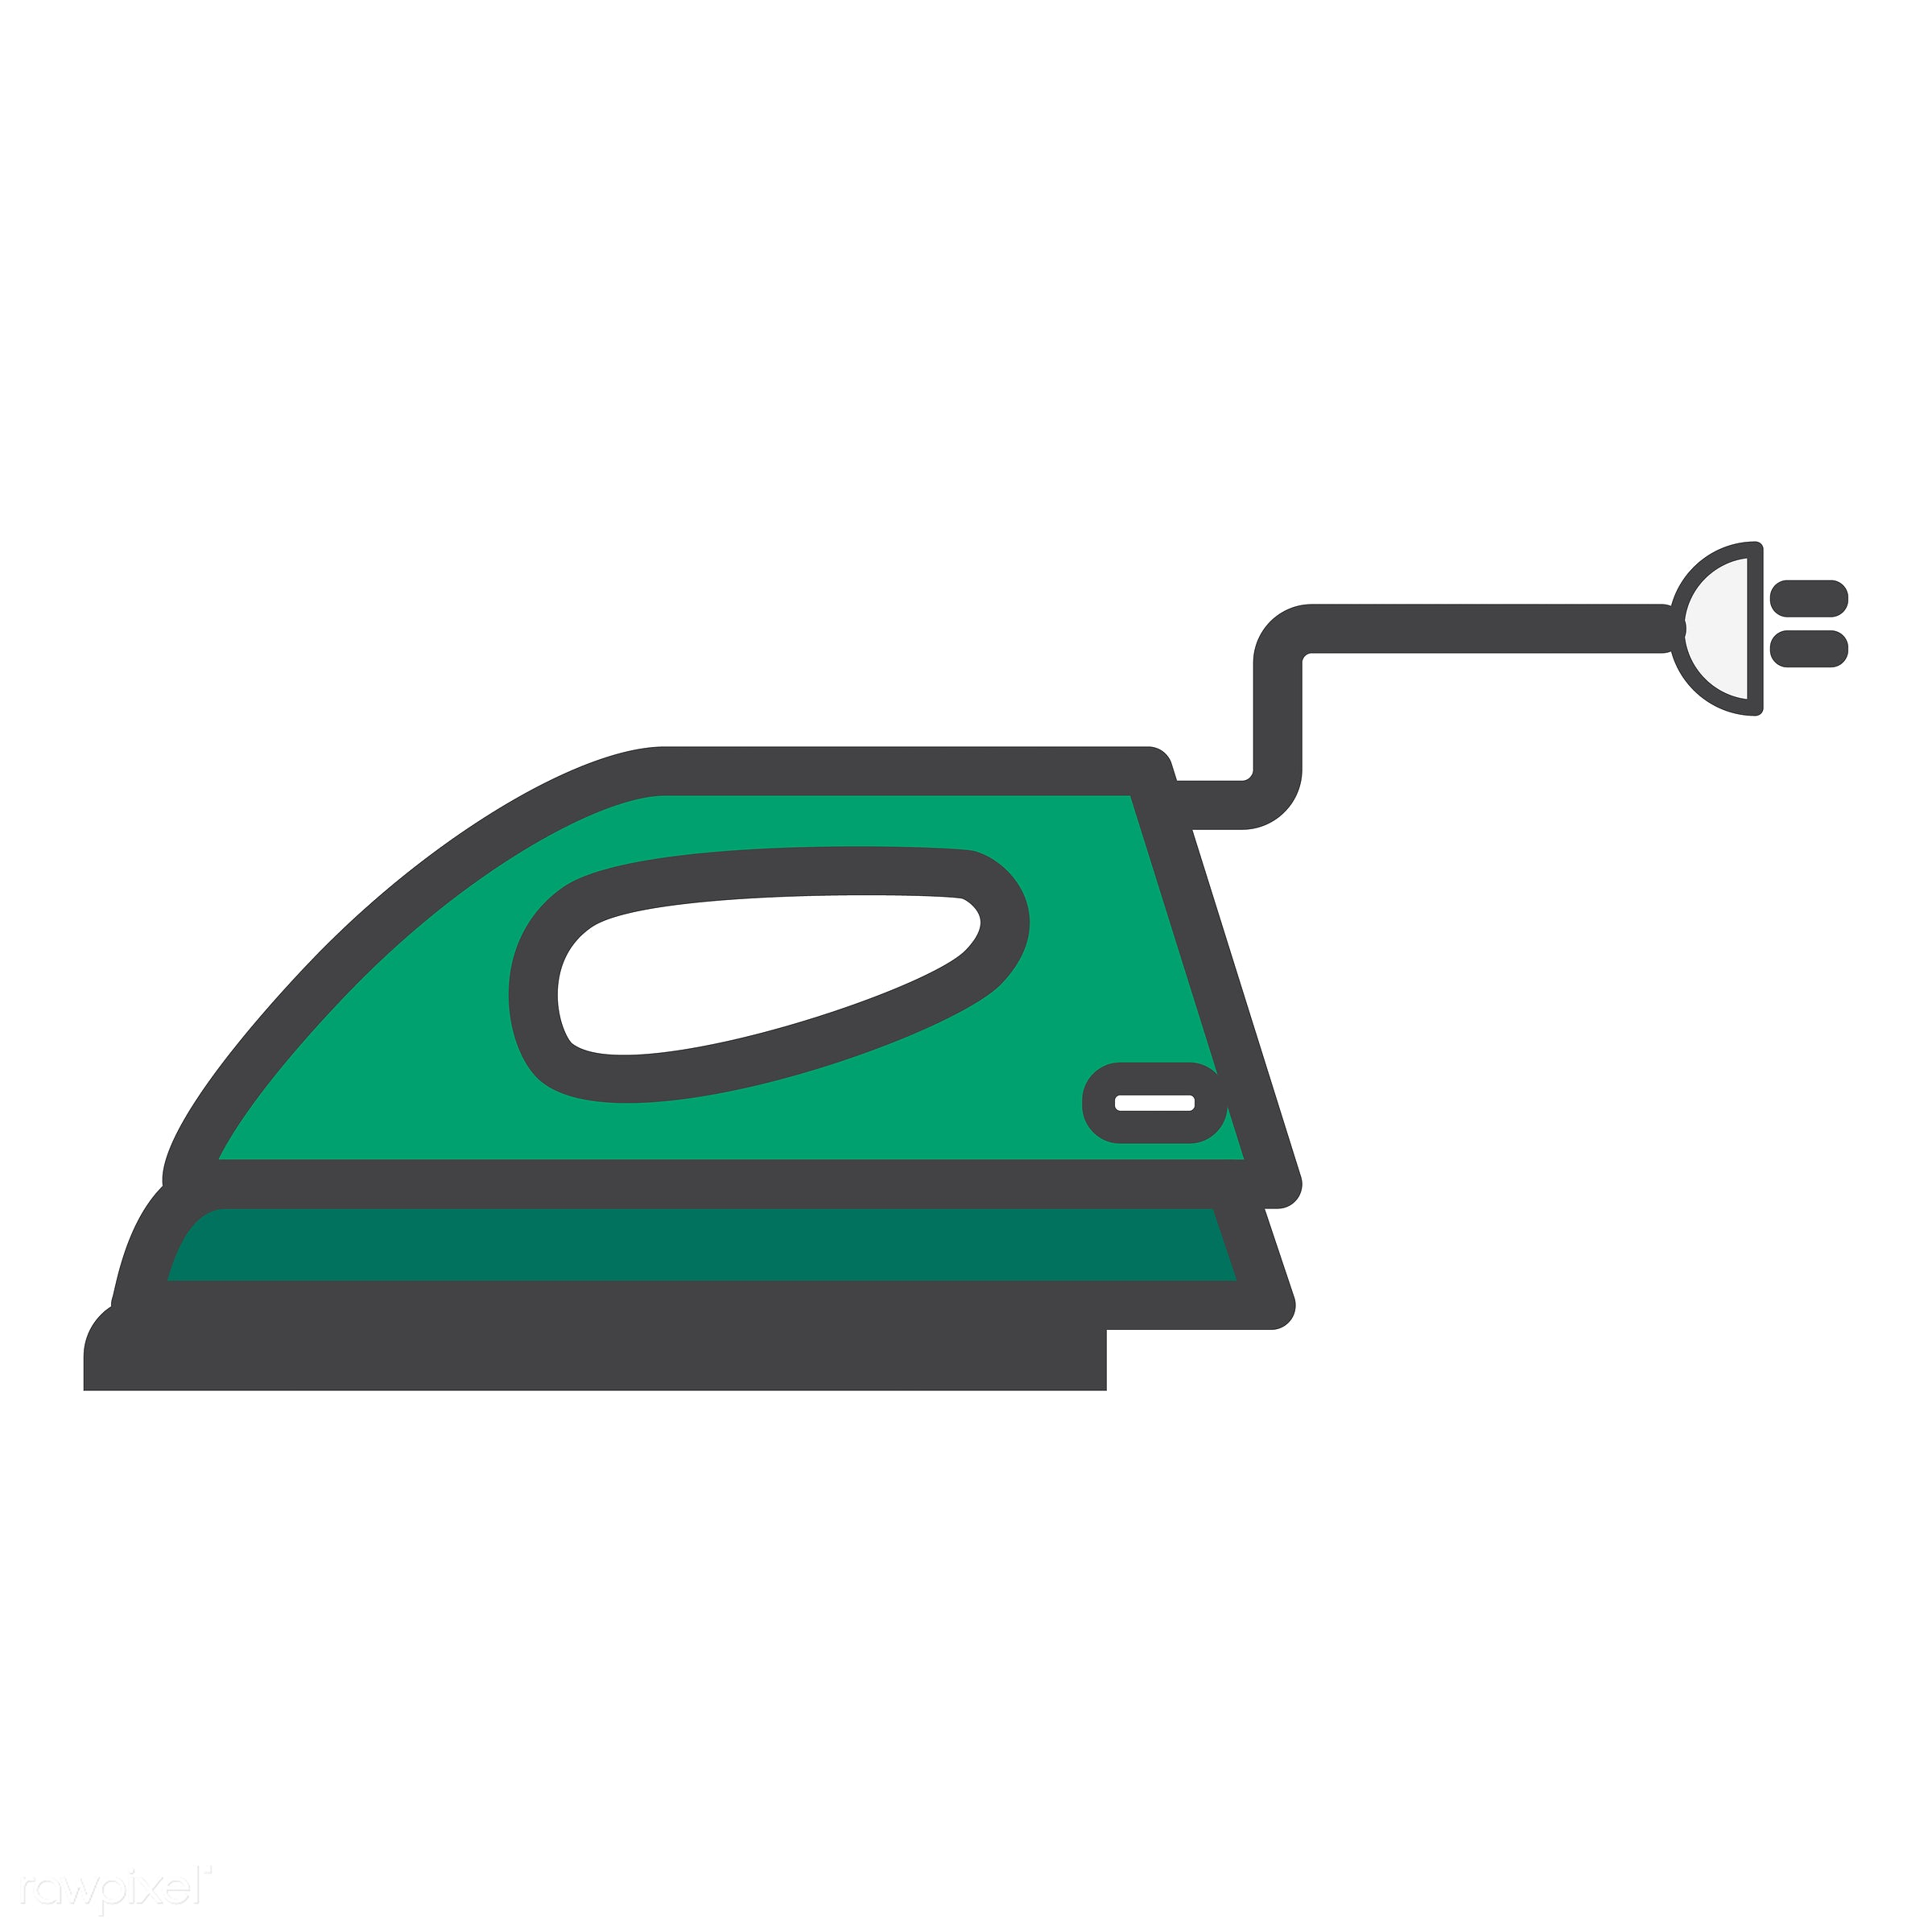 Iron icon vector - iron, abode, adults, clothes, comfort, cozy, dwelling, home, homely, house, household, living, pad,...